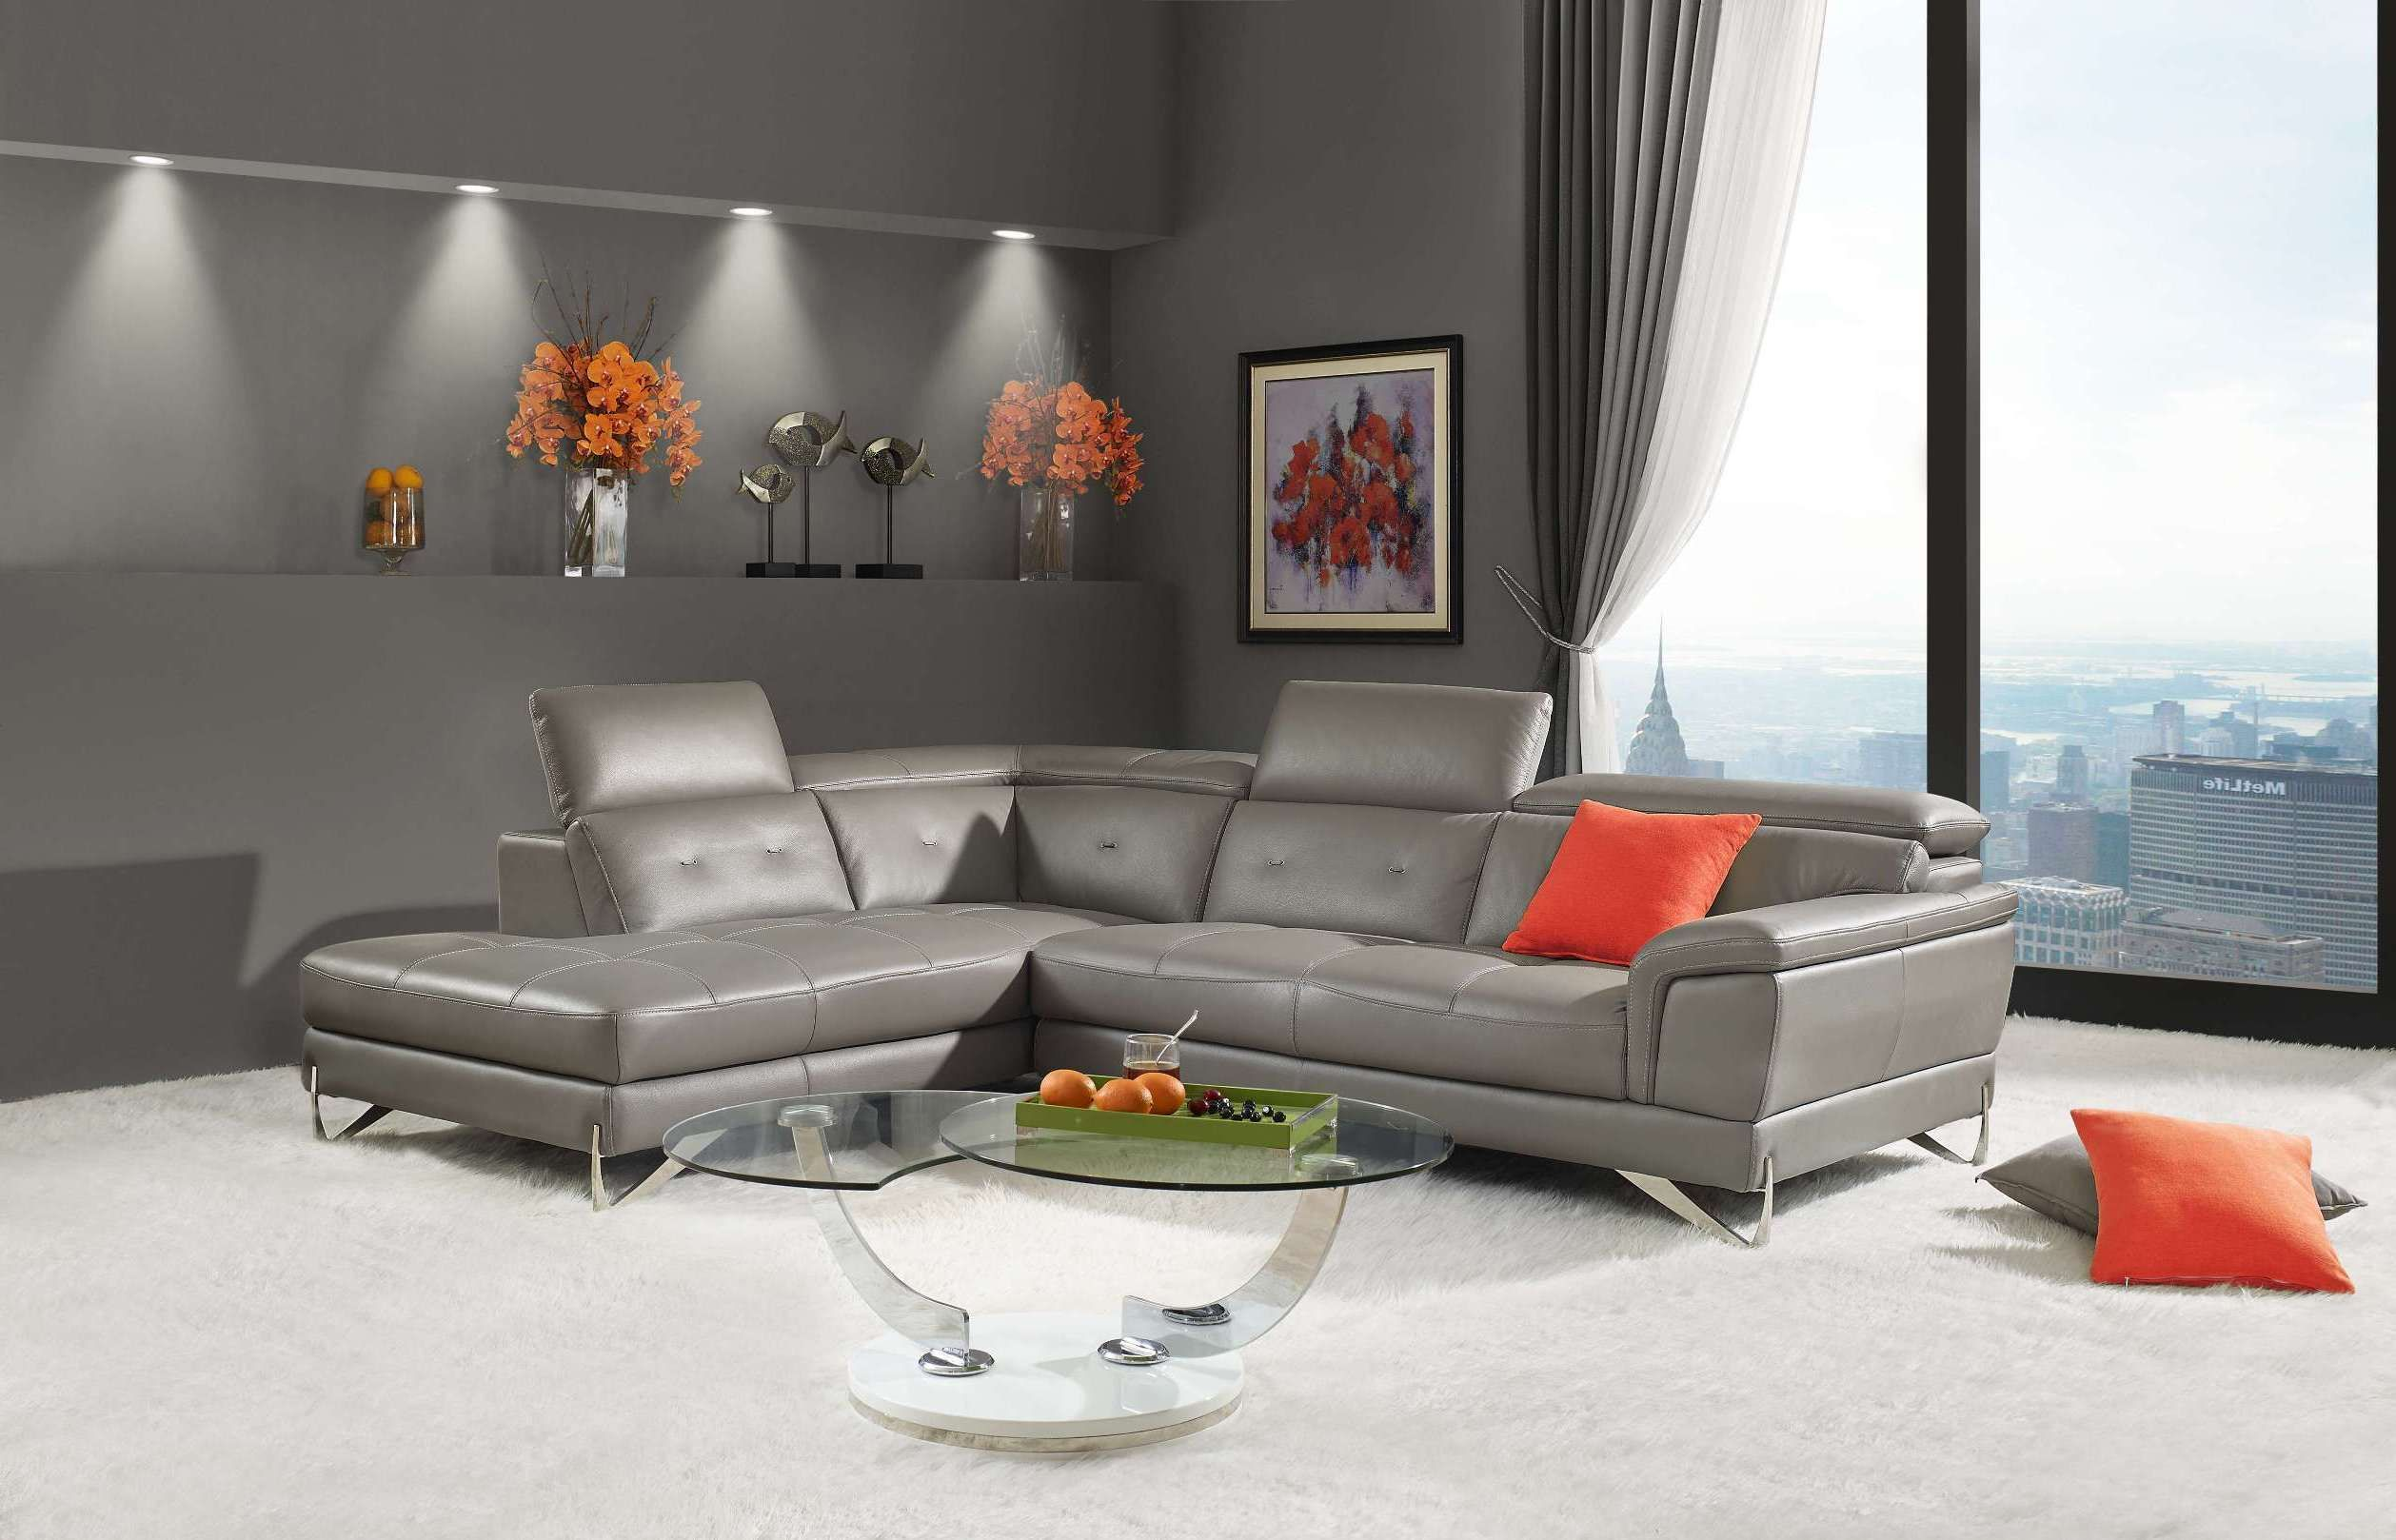 Natuzzi Furniture Collection At Our Creative Furniture Store